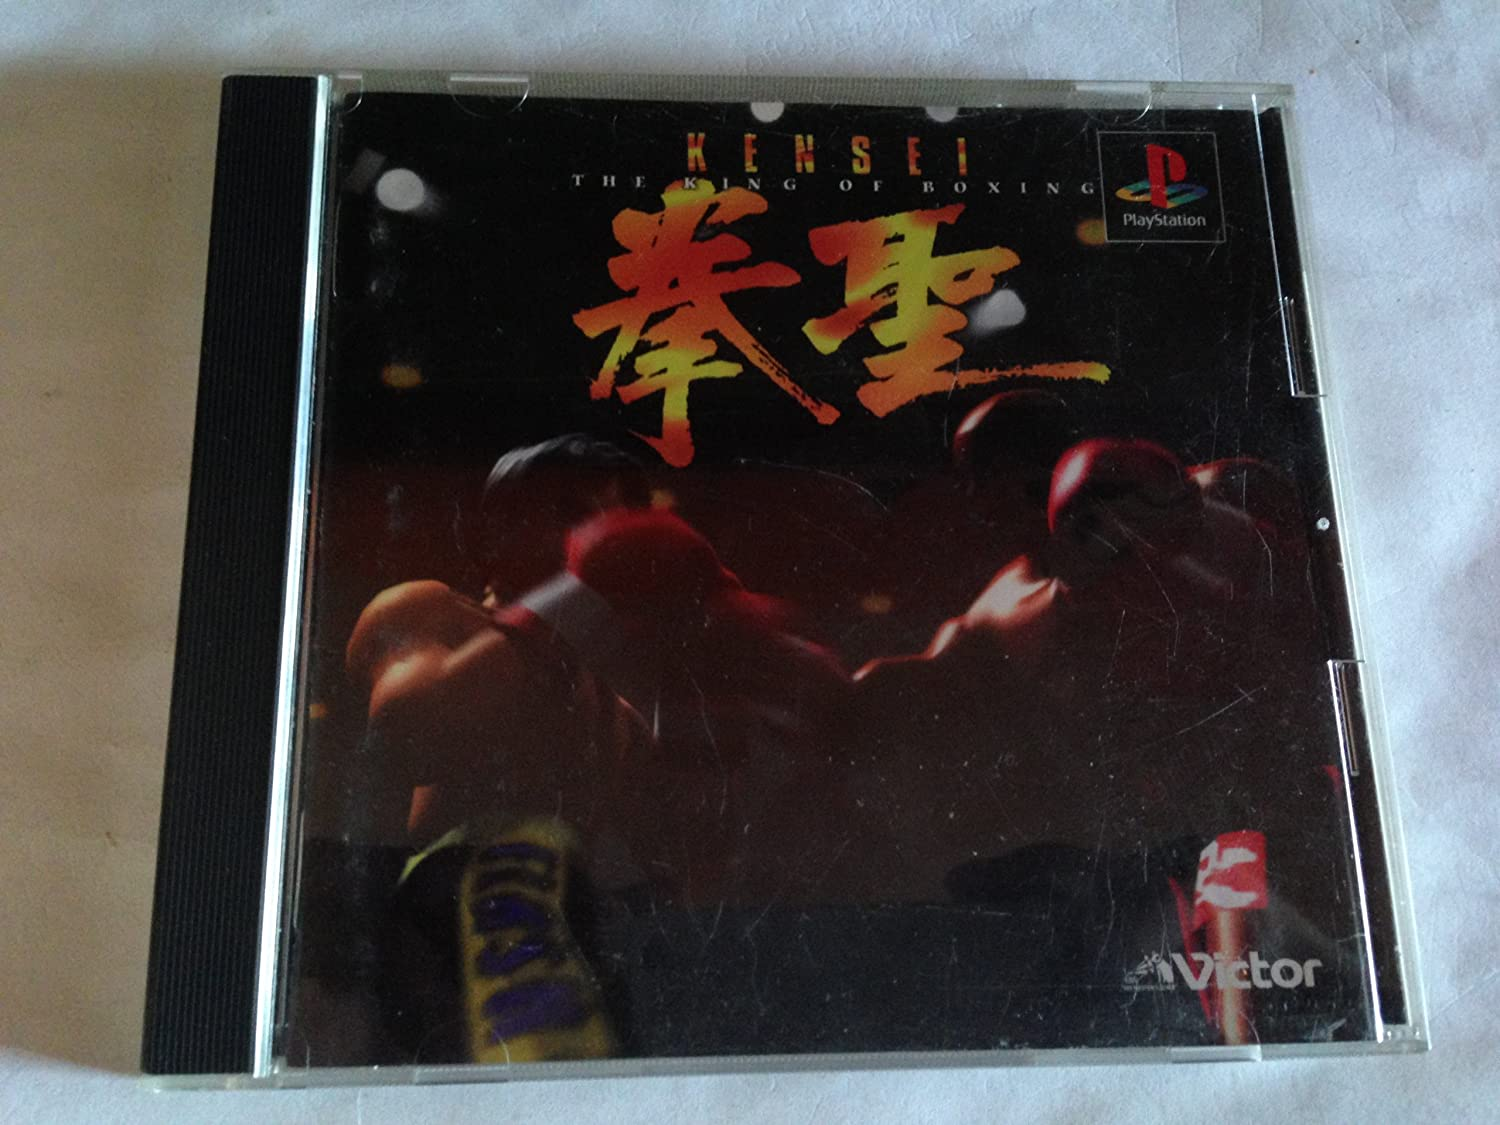 Kensei: The King of Boxing [Japan Import]